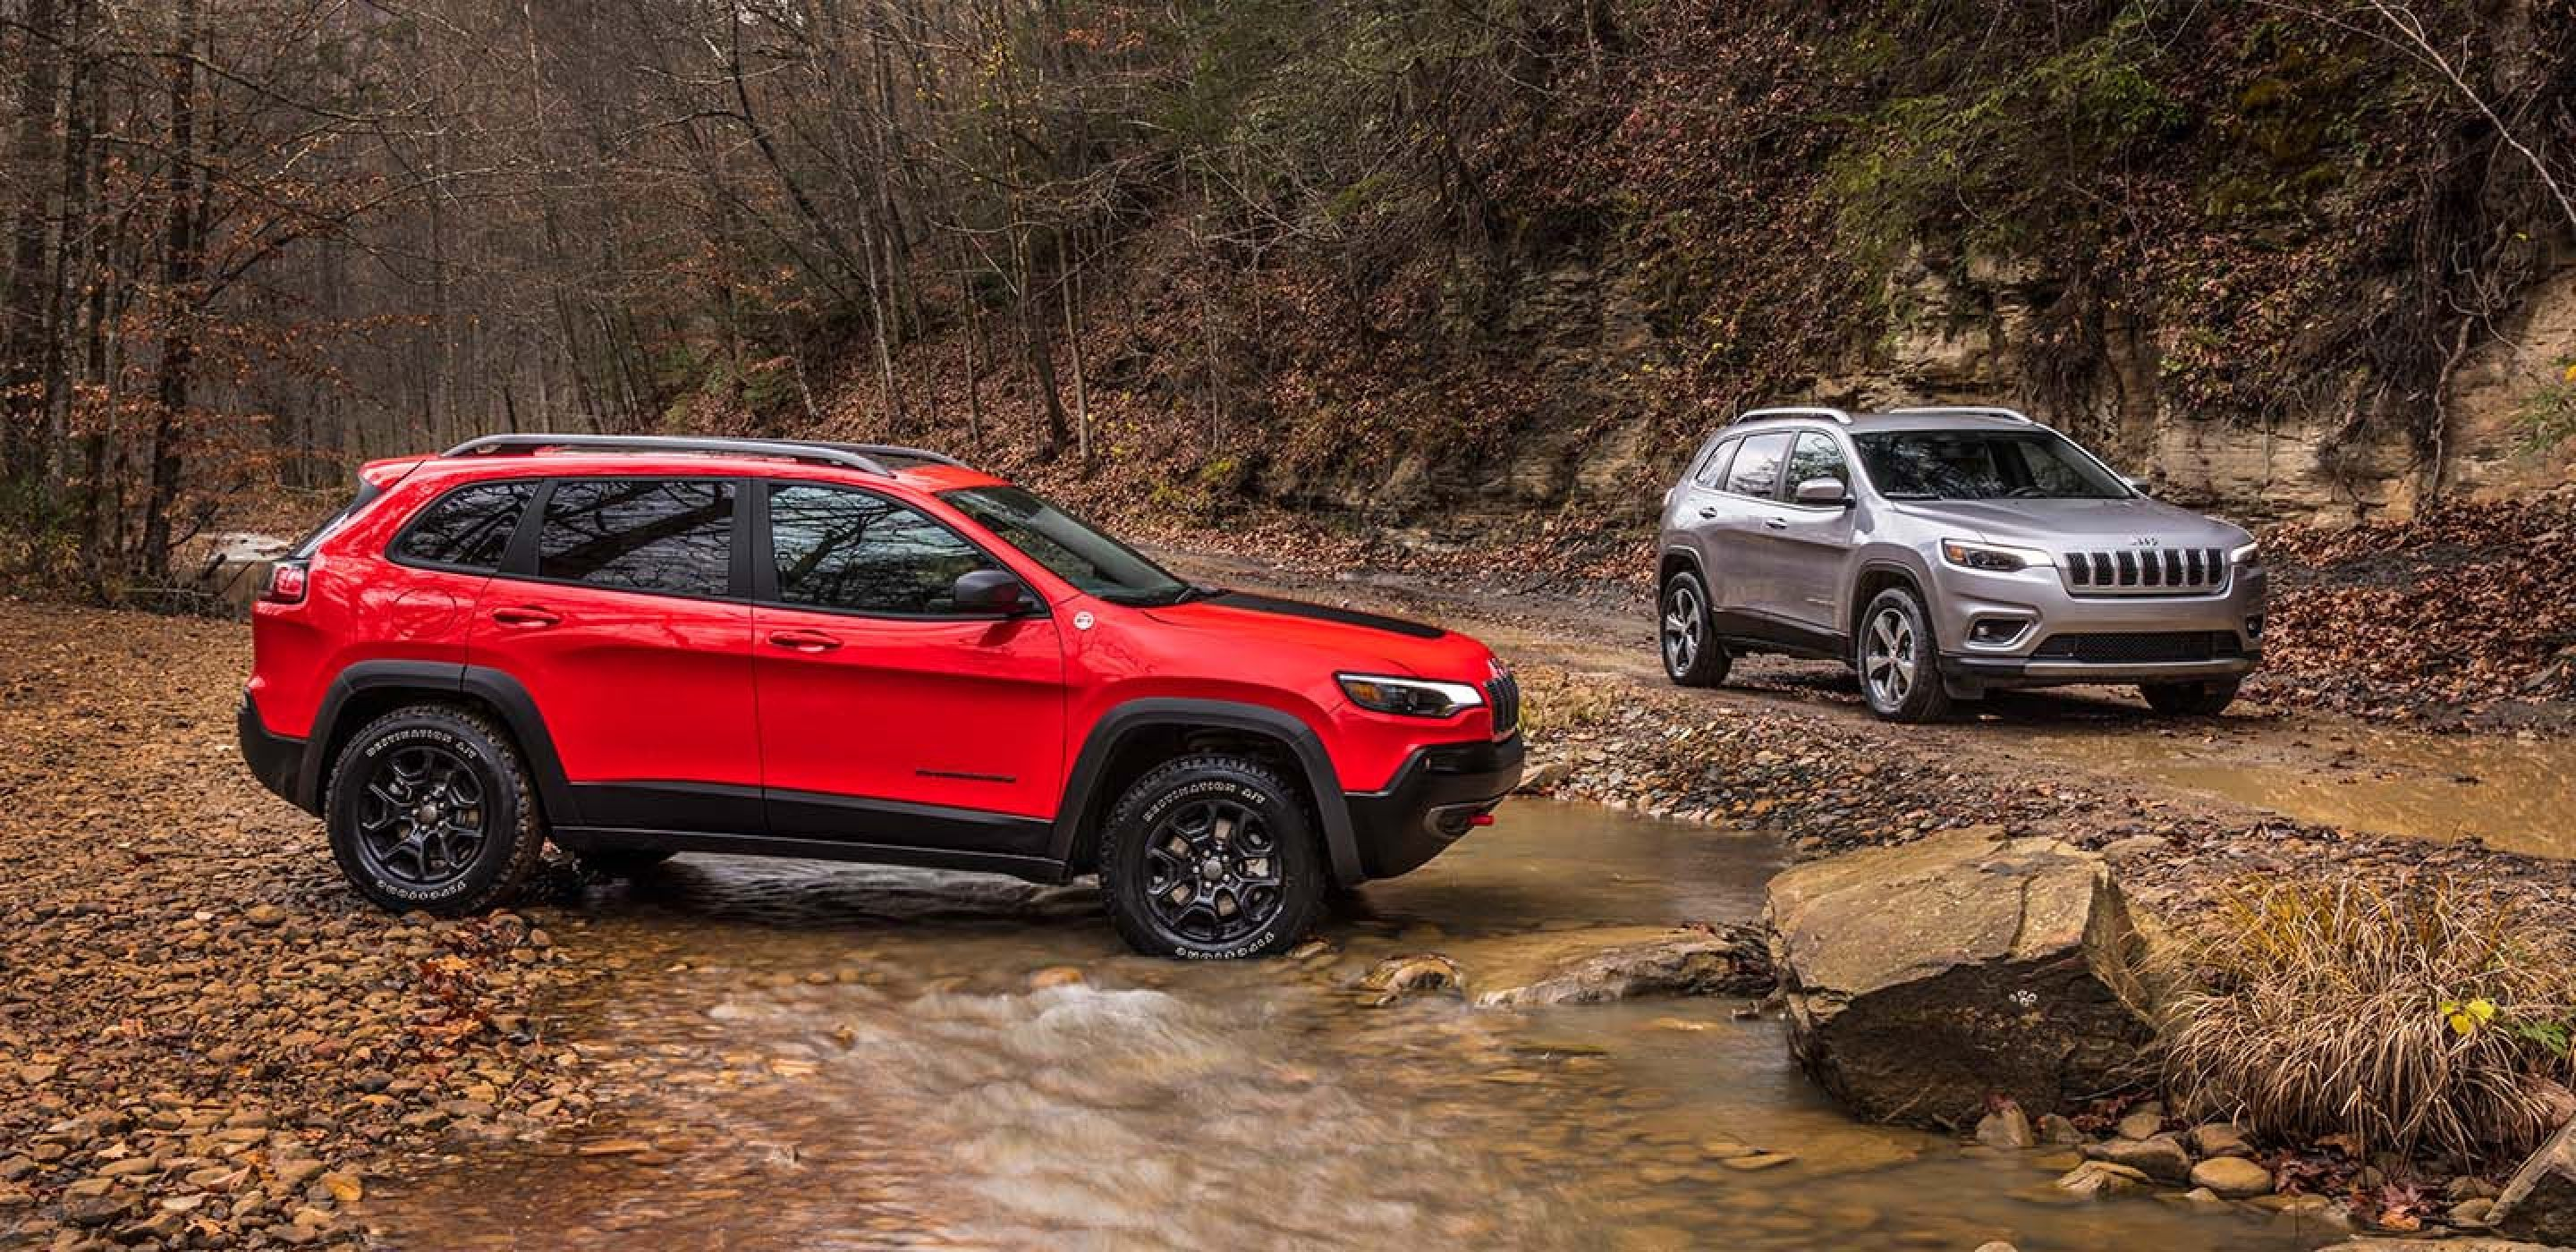 The 2019 Cherokee Trailhawk: Take It On or Off-Road